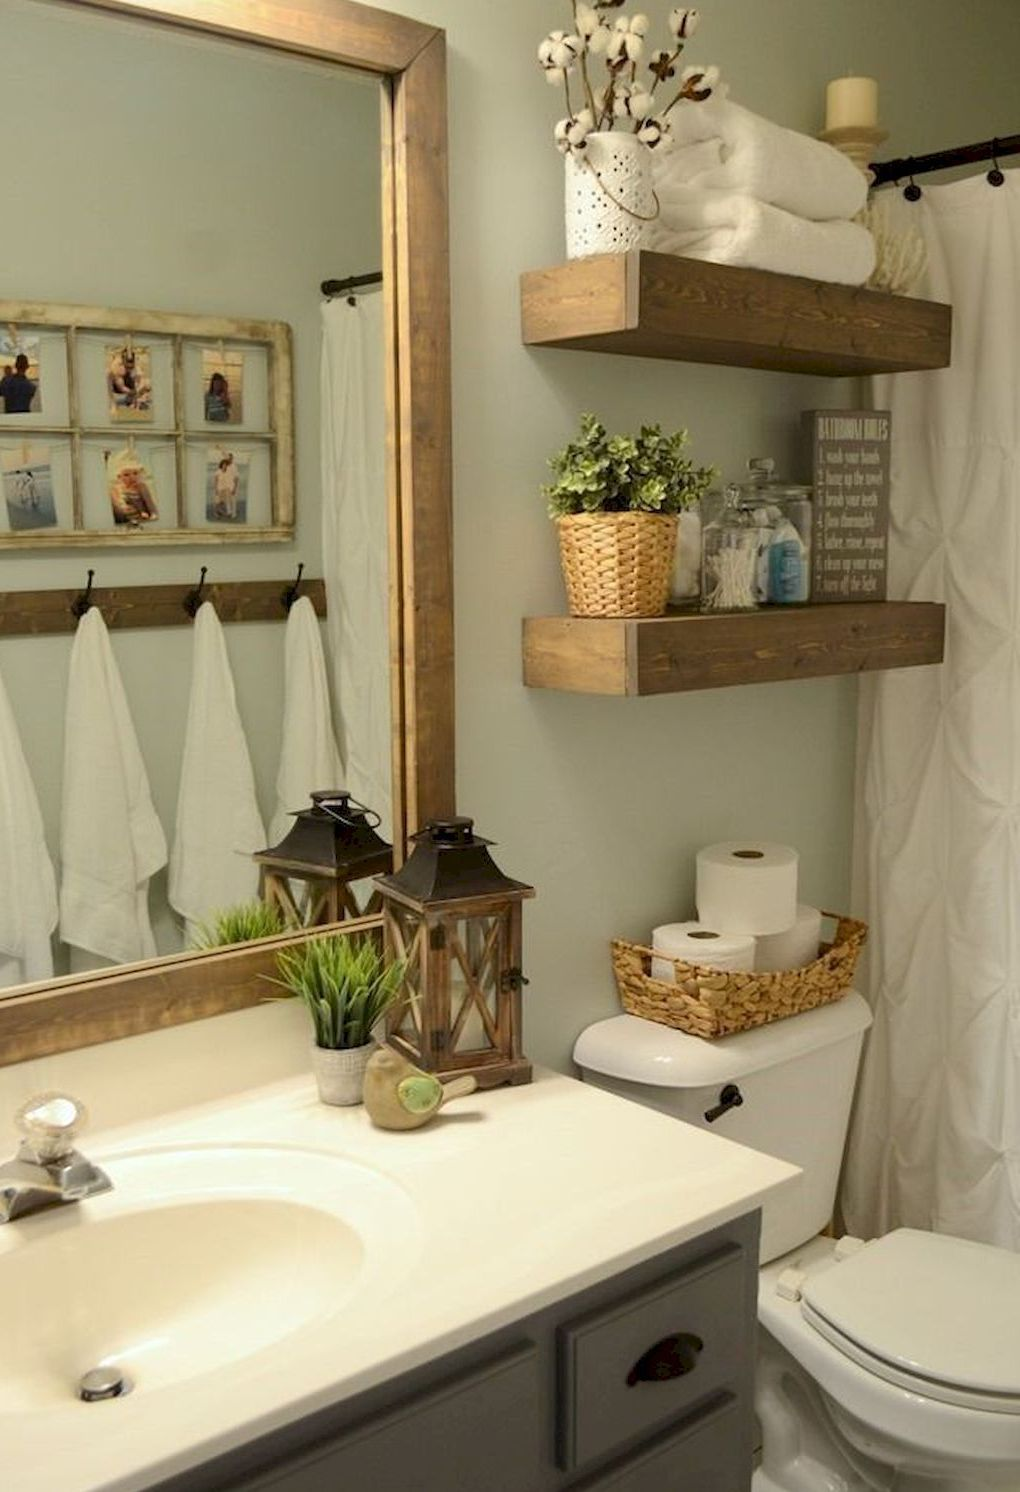 Decorative Rustic Storage Projects For Your Bathroom: Nice 60 Rustic Farmhouse Small Bathroom Remodel And Decor Ideas #Bathroom #farmhouse #ideas